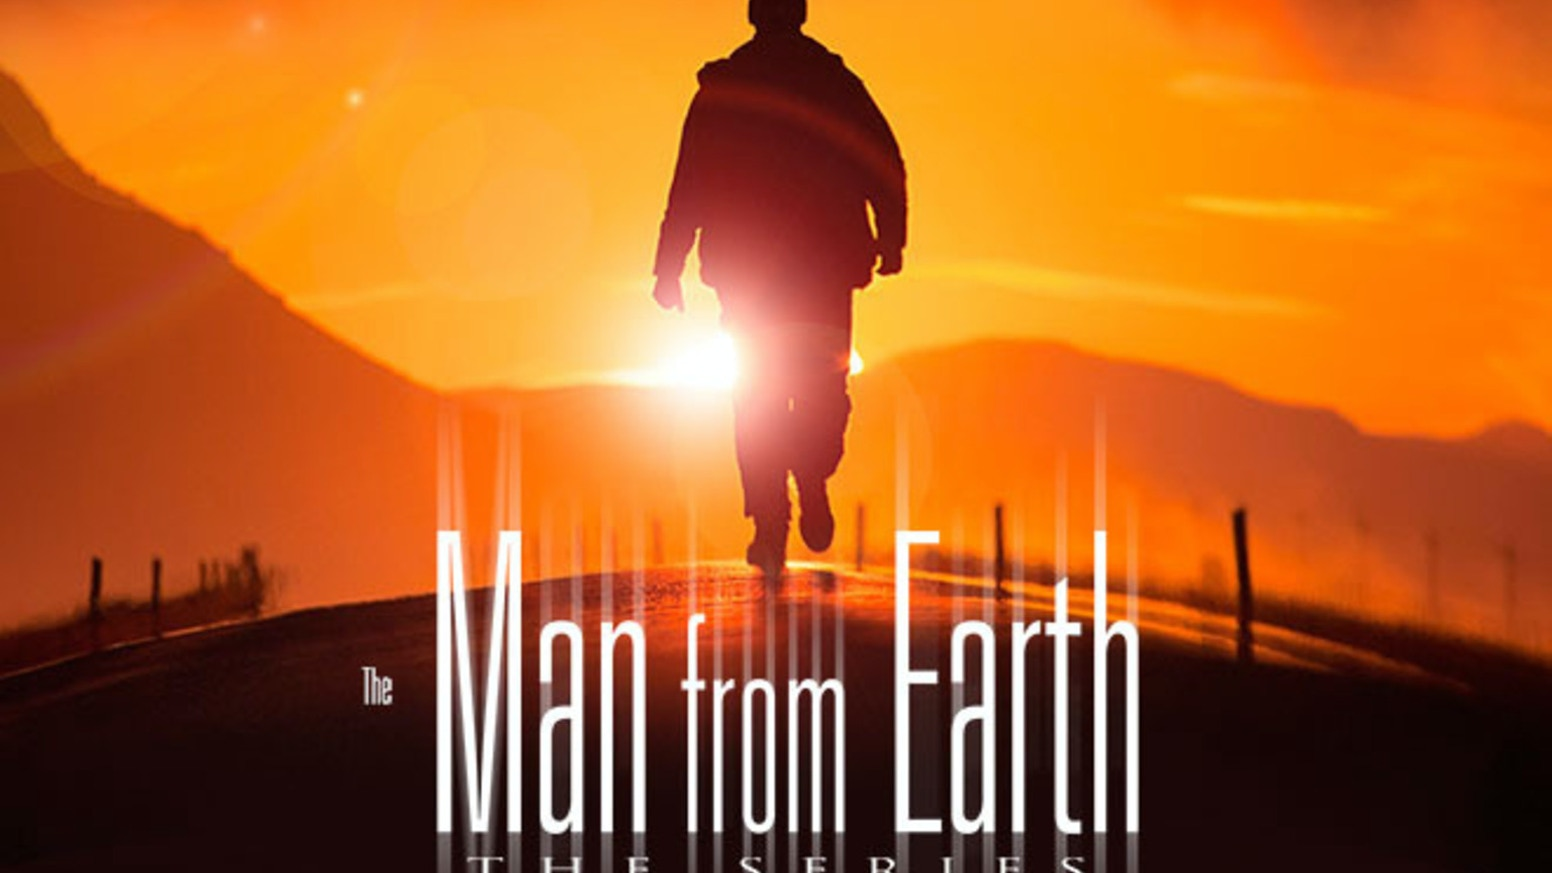 Coming soon: The further adventures of John Oldman, Jerome Bixby's Man From Earth.